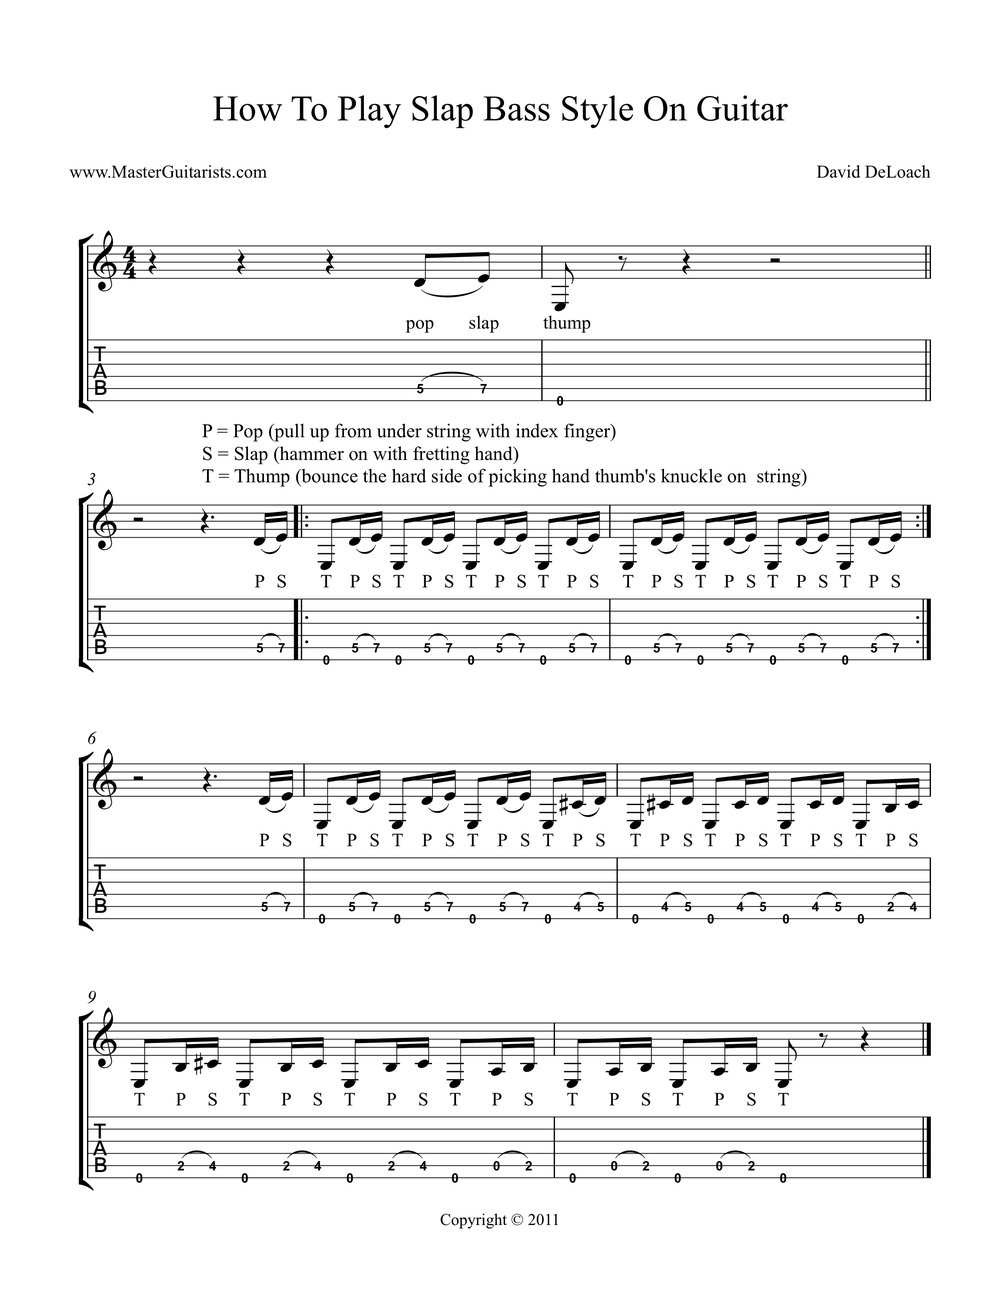 How To Play Slap Bass Style On Guitar1496410019-1.jpeg